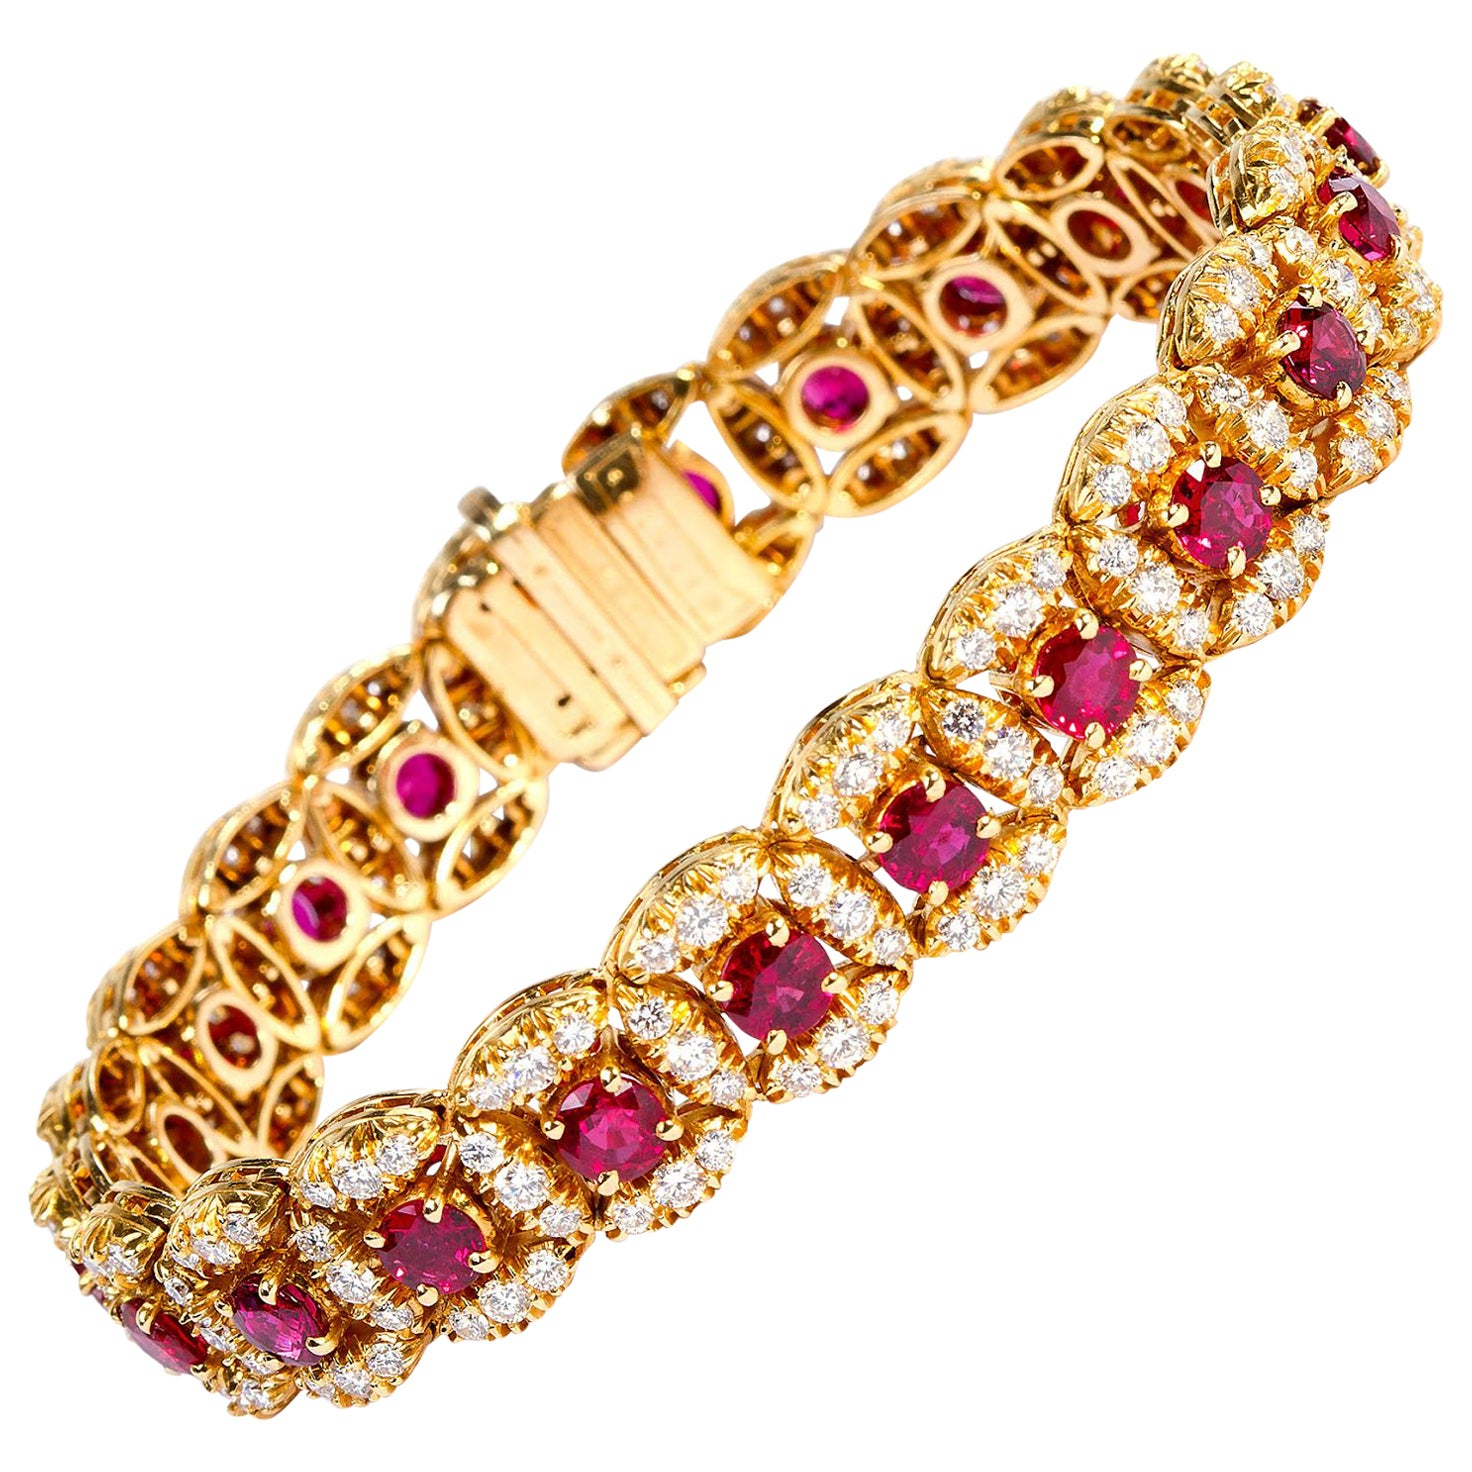 Original Oscar Heyman Ruby and Diamond Bracelet